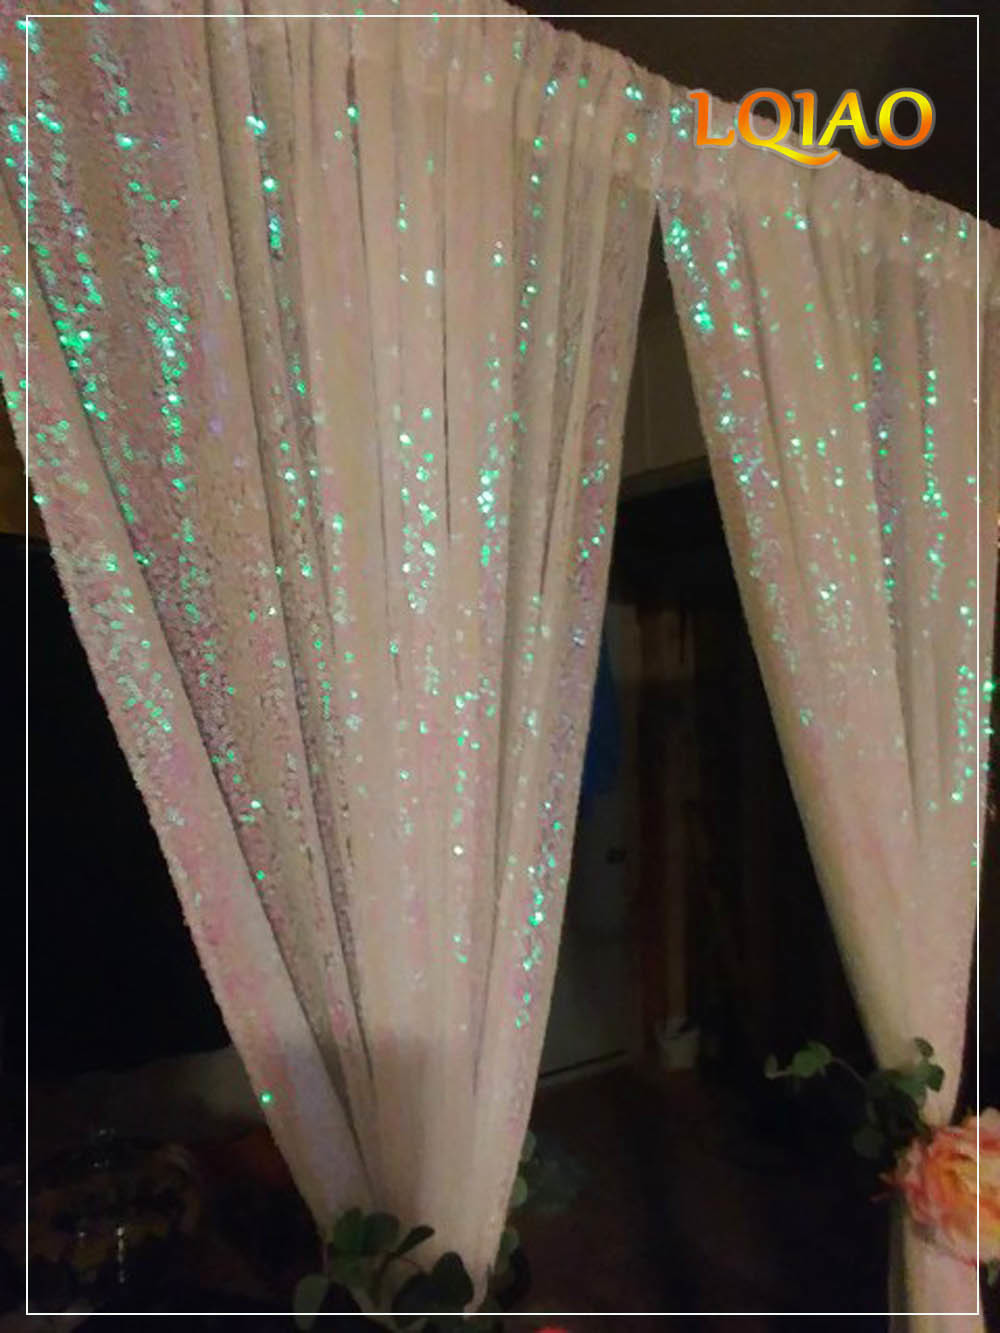 5FT-6FT-10FT-10FT-White-Gold-Sequin-Backdrops-Party-Wedding-Photo-Booth-Backdrop-Decoration-Sequin-curtains